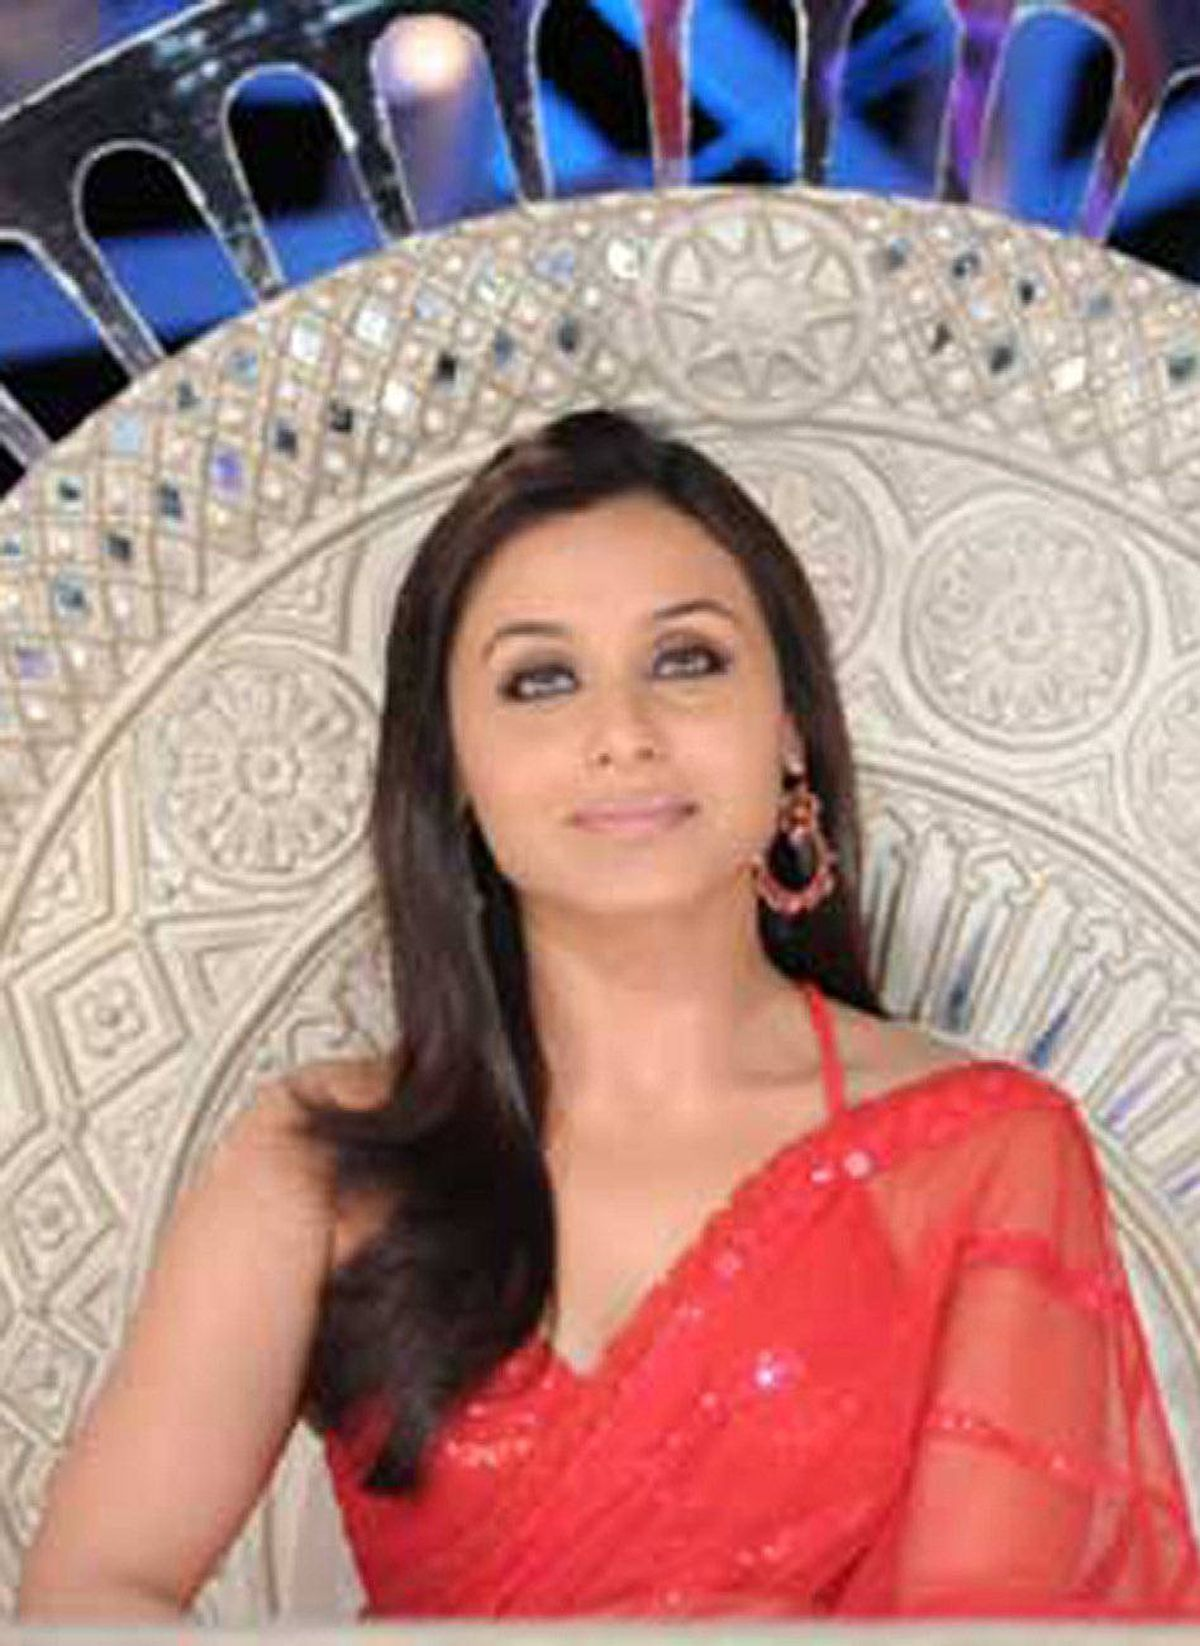 Rani Mukherji Who else can play such diverse roles as a blind, deaf, mute (Black, 2005), a prostitute (Laaga Chunari Mein Daag, 2007) and a man (Dil Bole Hadippa, 2009). No surprise, Mukherji has earned countless Best Actress nods. <i>Ranga Thangarajah is a contributor to ANOKHI Magazine (www.anokhimagazine.com).</i>